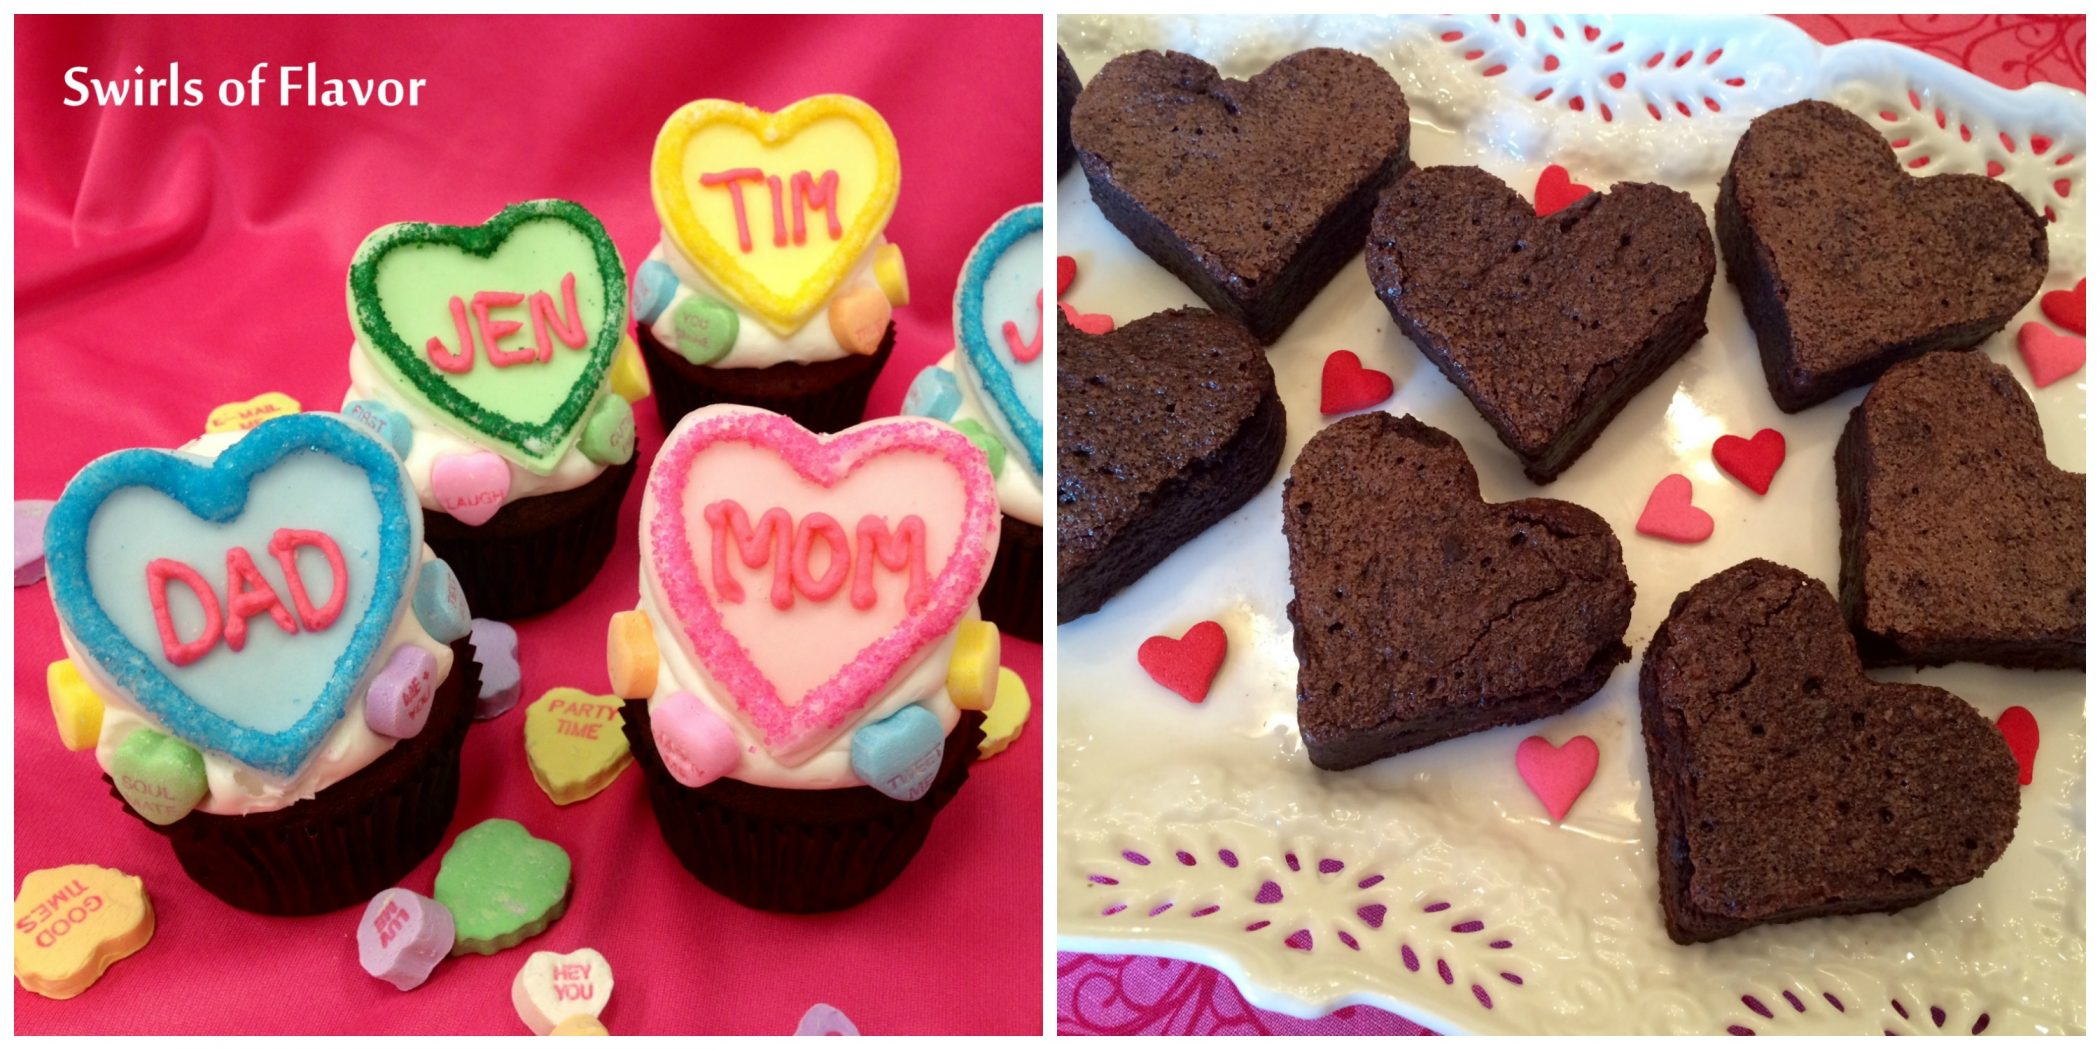 Conversation Heart Cupcakes and heart brownies